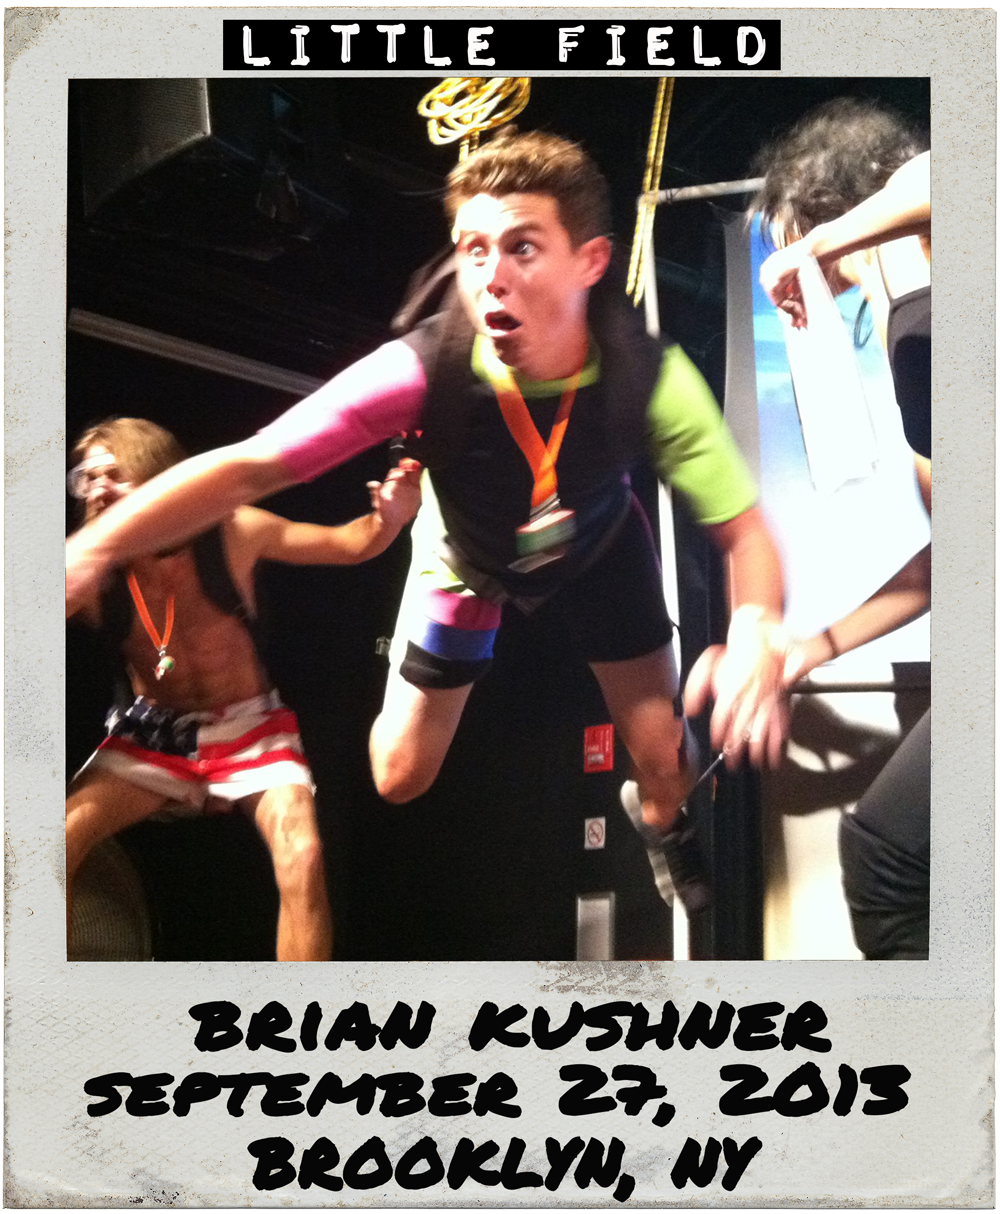 09_27_13_Brian-Kushner_Little-Field.png